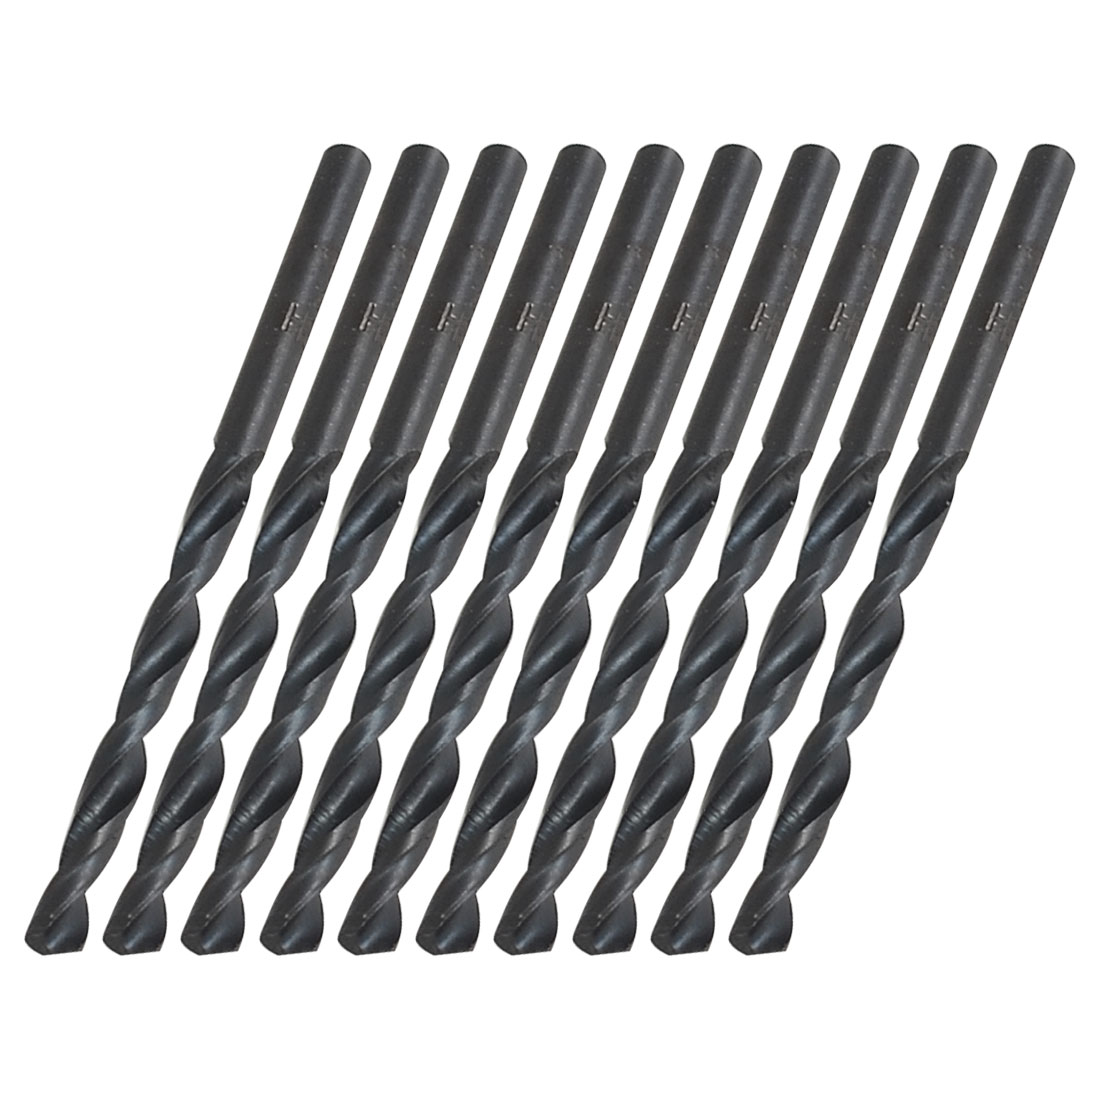 10 Pcs HSS 4mm Dia Tip Straight Shank Twist Drilling Bit for Electric Drill